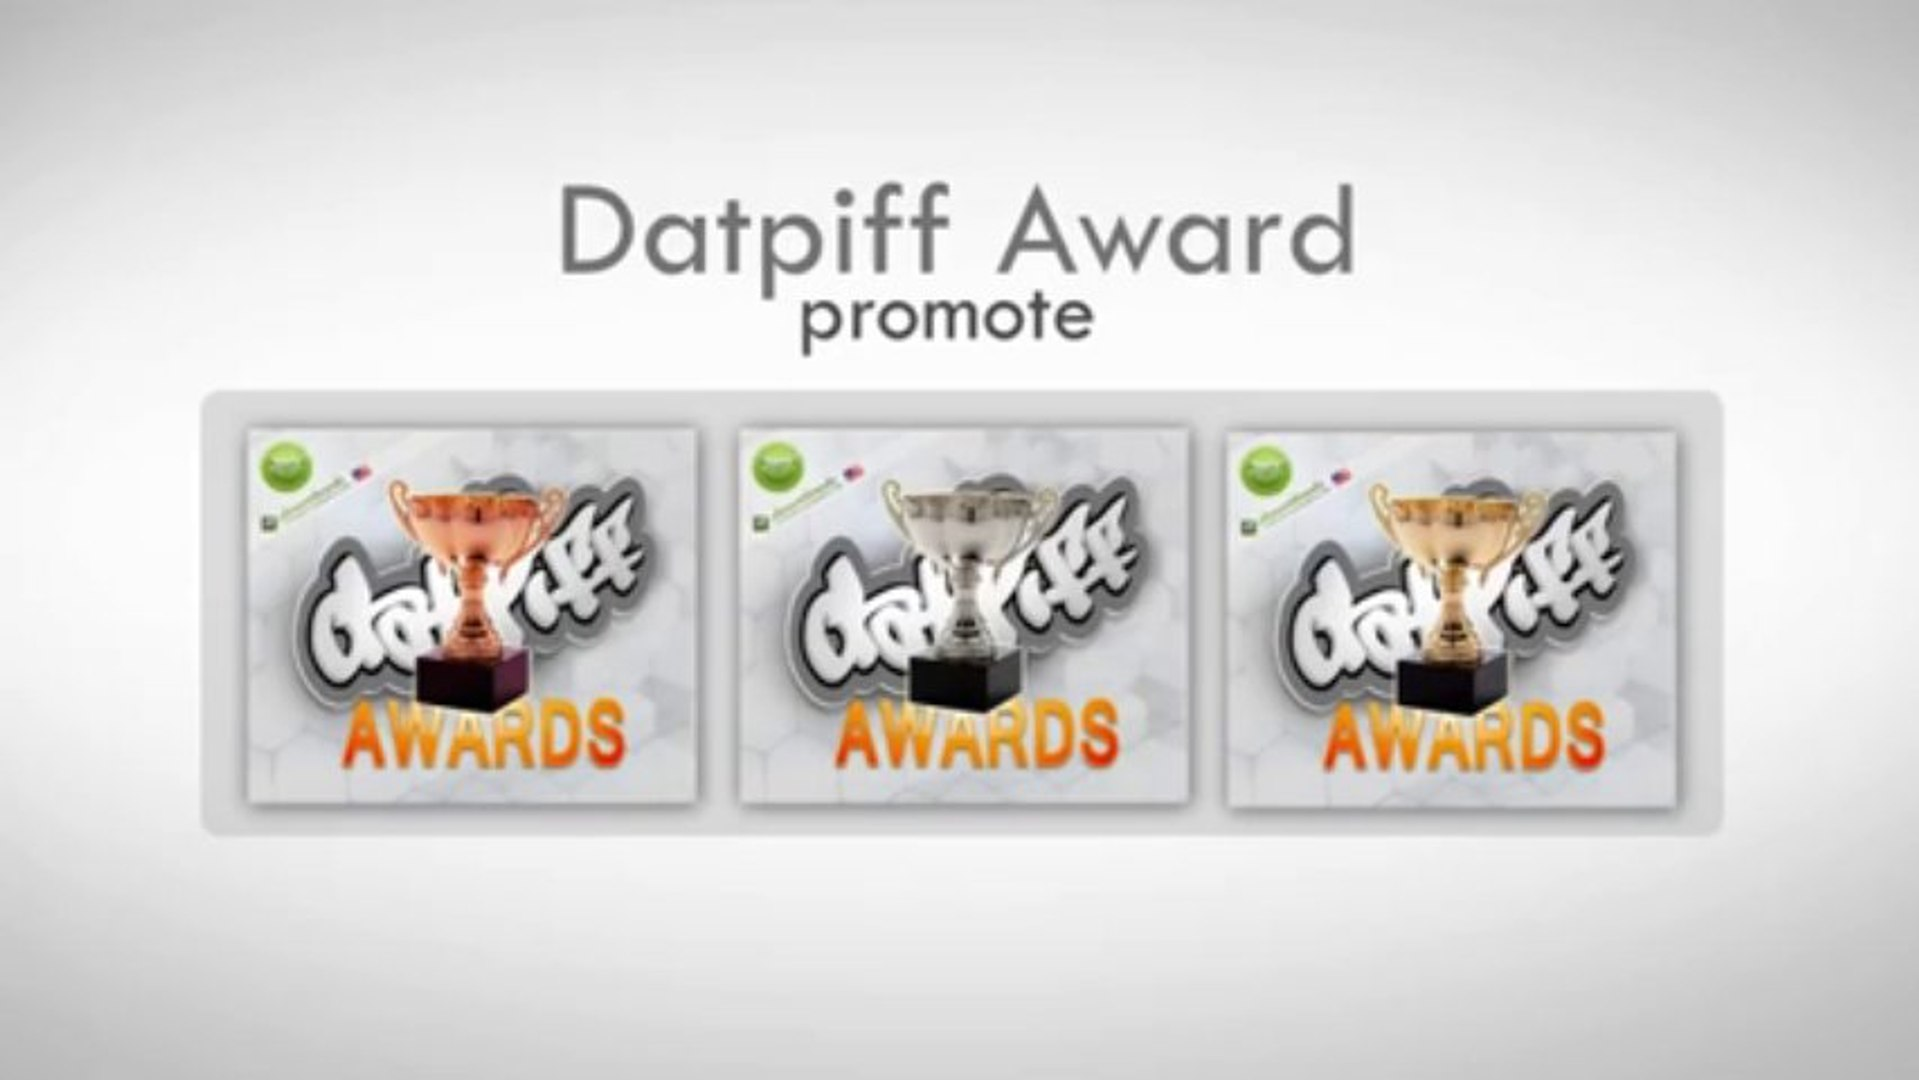 Get Datpiff Awards, and up on Datpiff Hot This Week - Mixtape Promotion